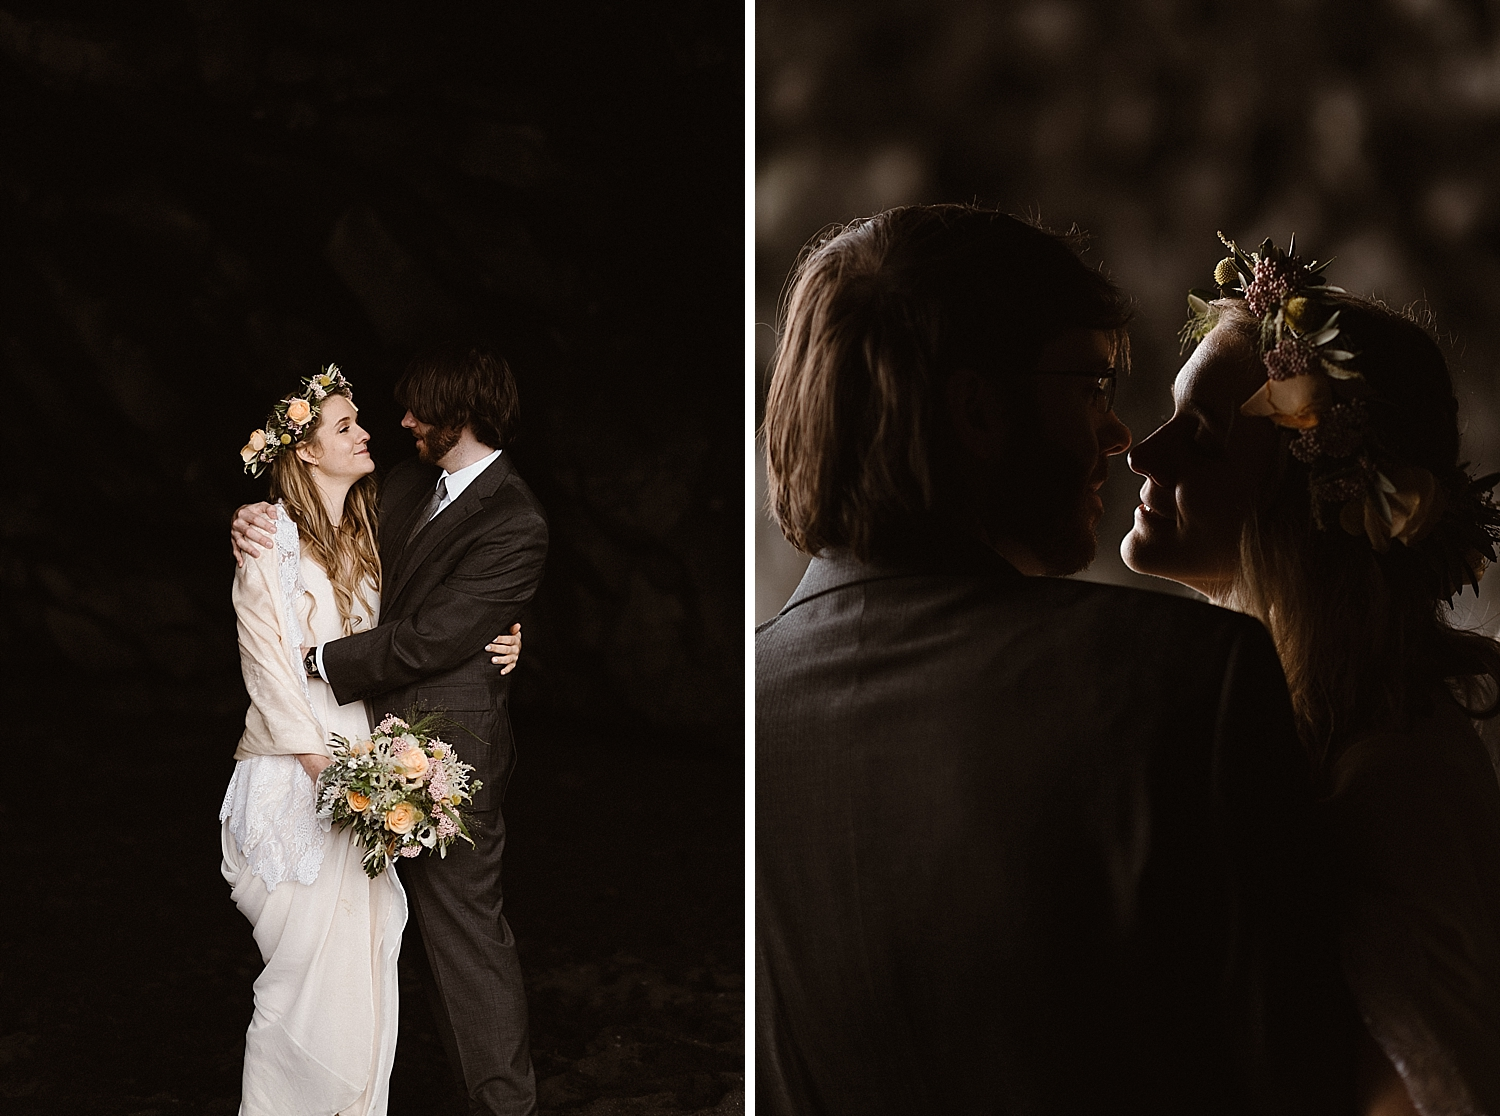 The lighting along Reynisdrangar beach set the tone for their moody intimate Iceland elopement. Photos of this epic Iceland elopement captured by traveling wedding photographer Maddie Mae.